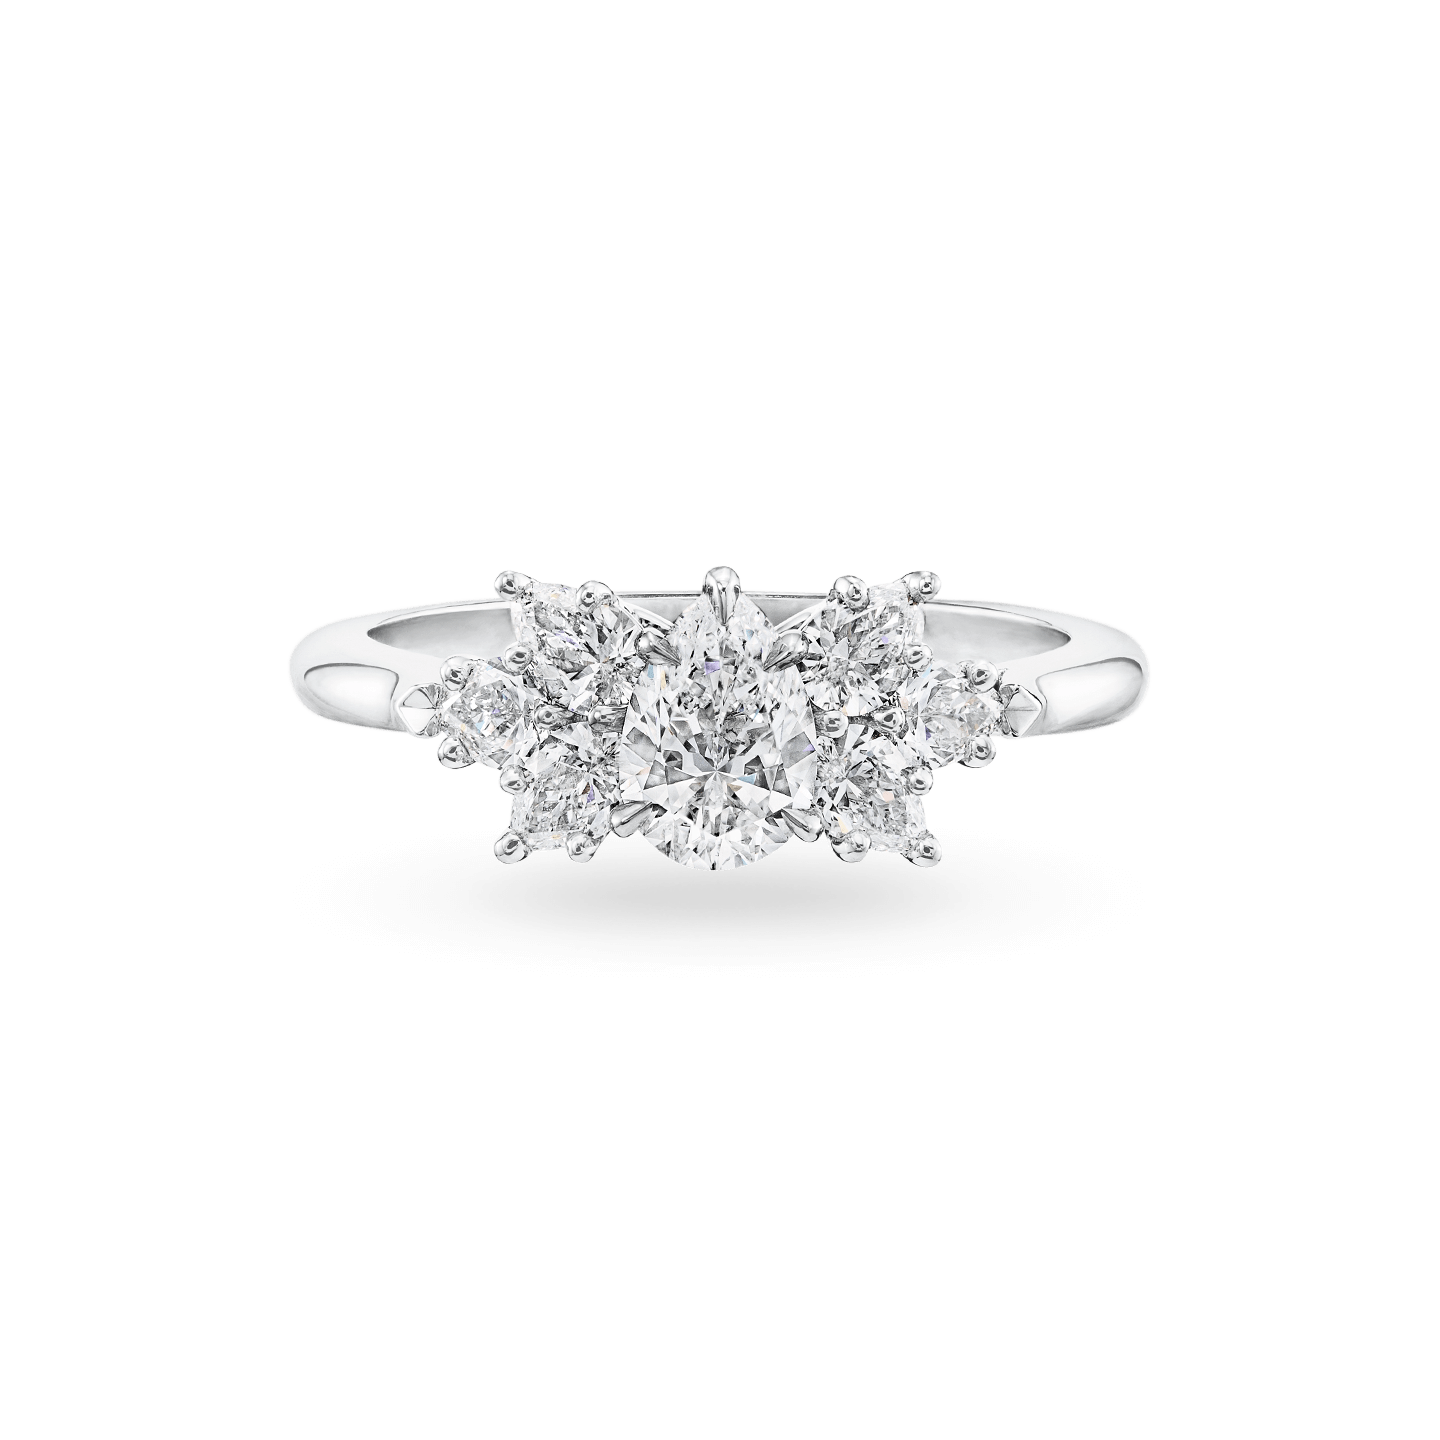 Pear-Shaped Cluster Diamond Engagement Ring, Product Image 1